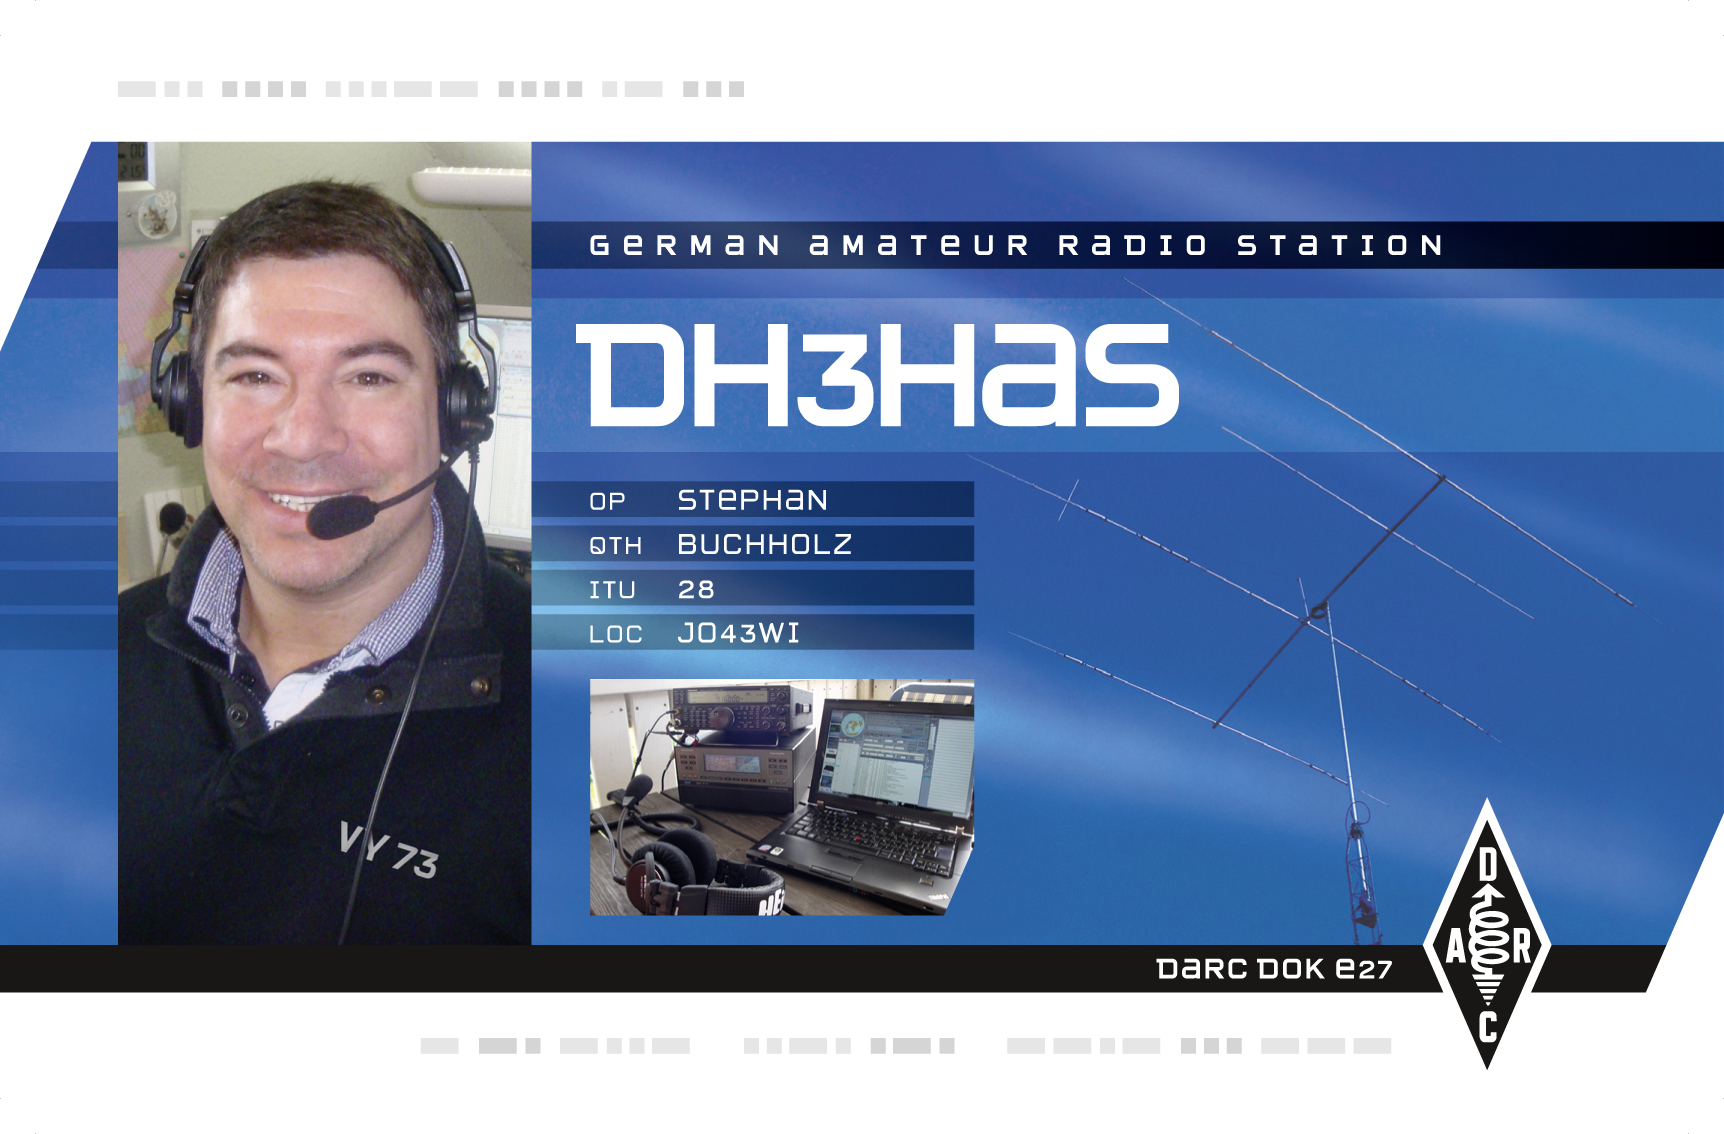 QSL image for DH3HAS